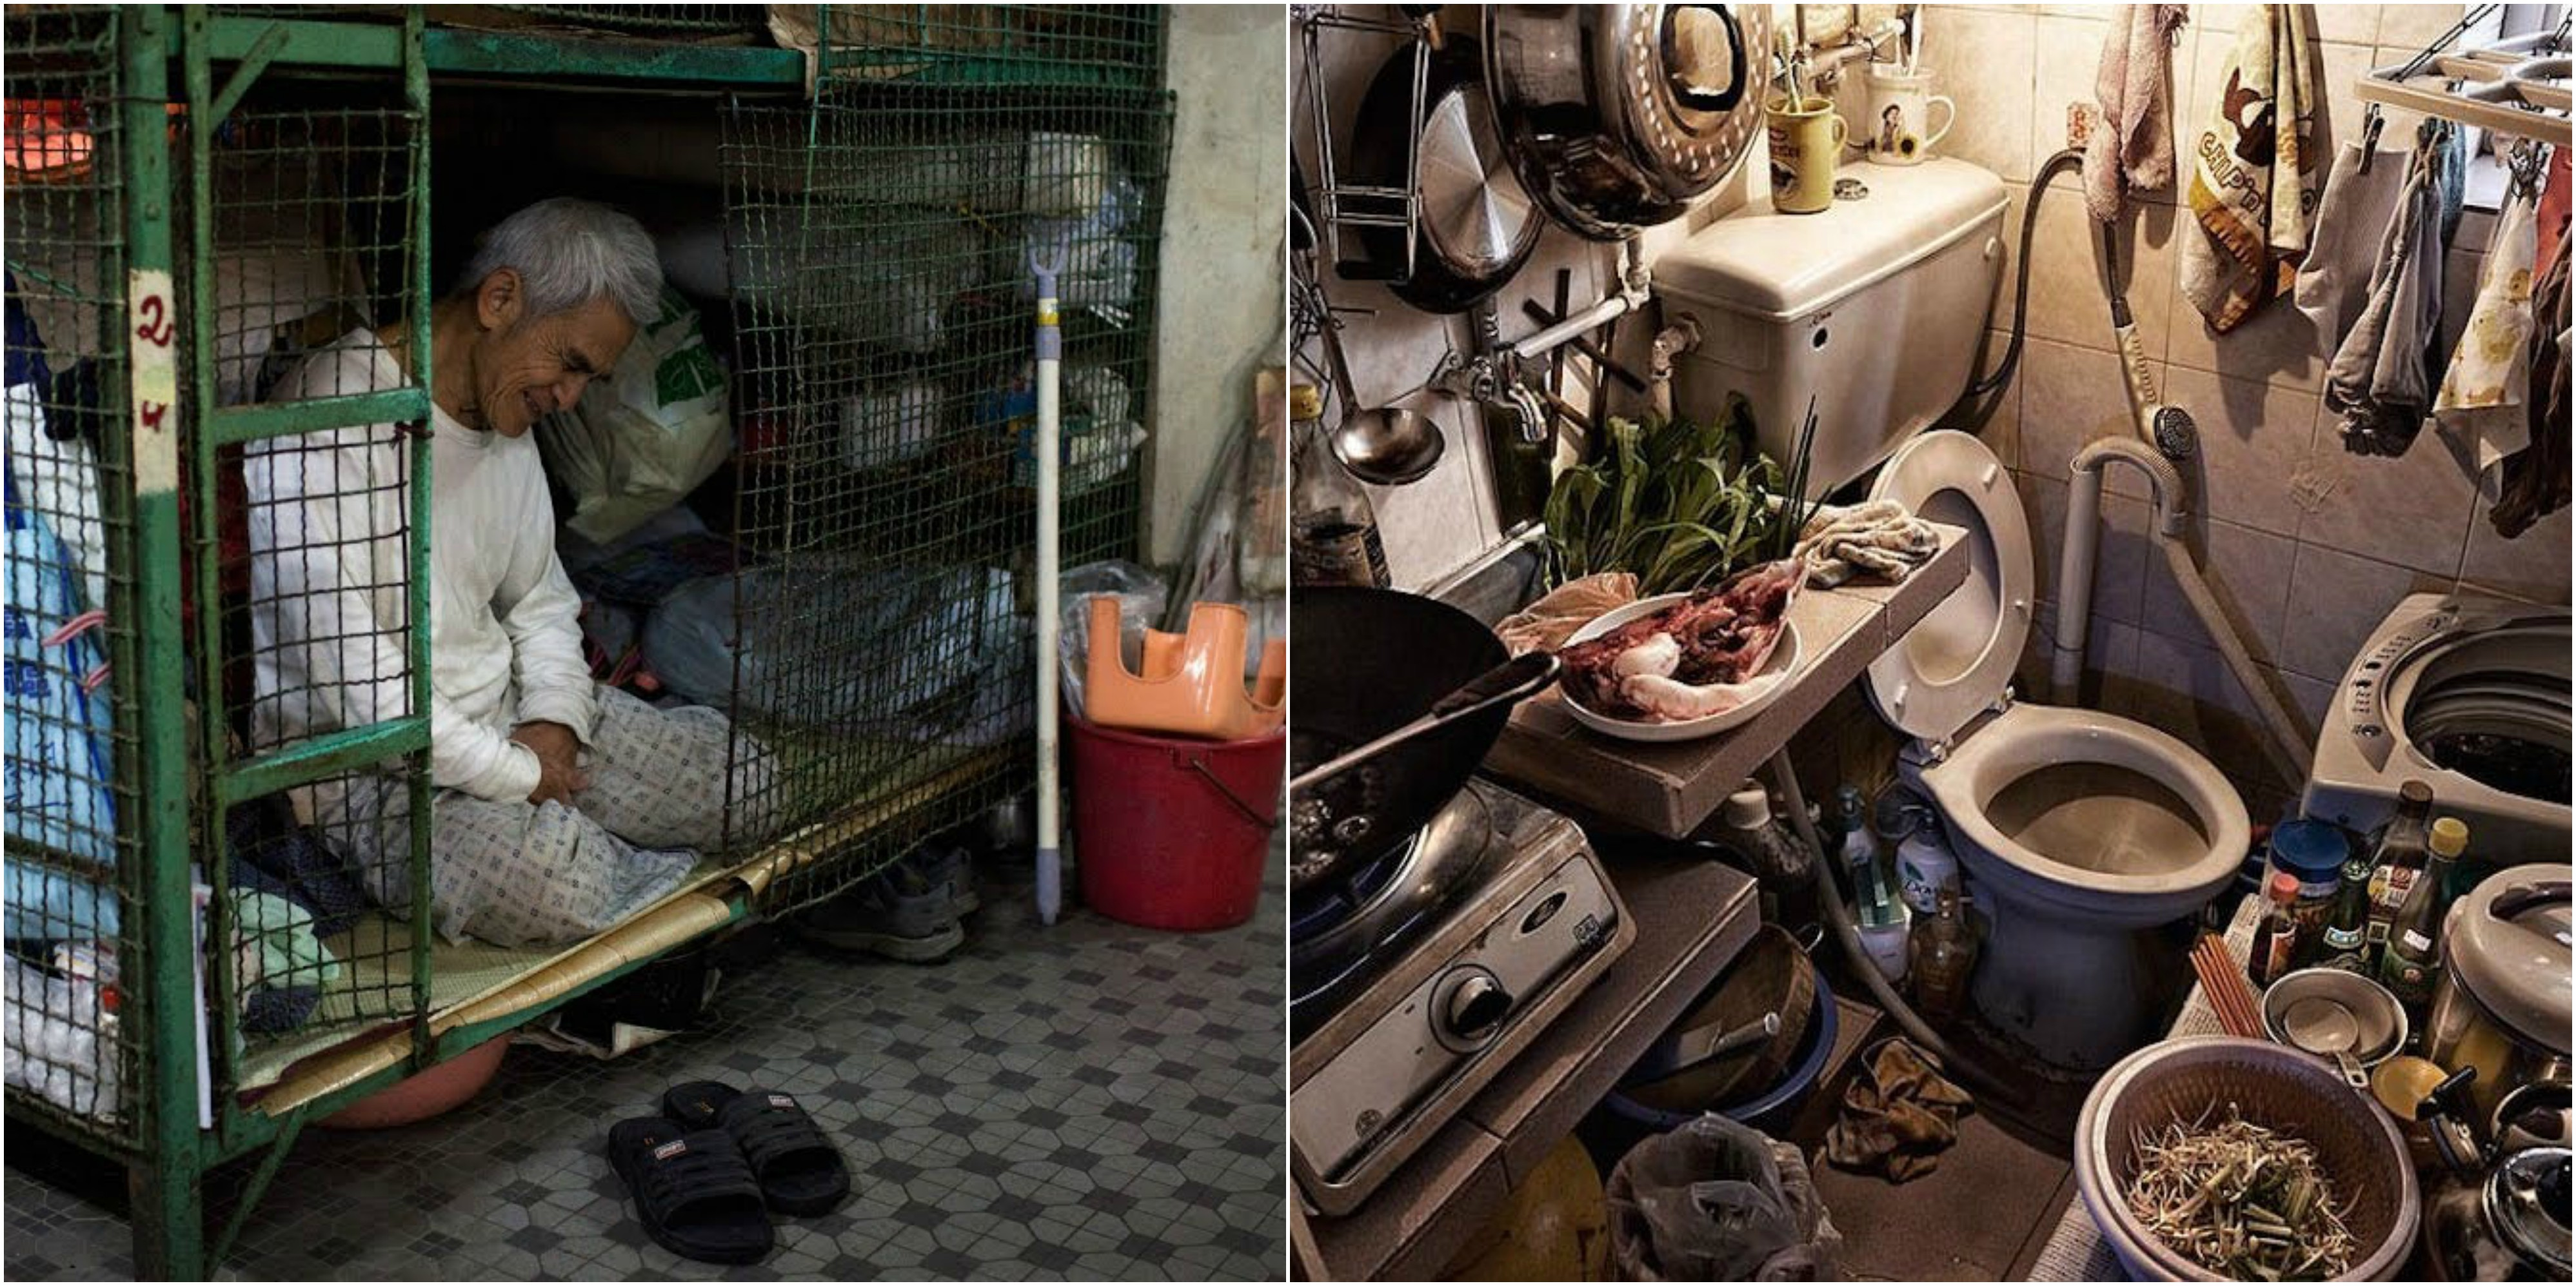 Shocking Images From Inside Hong Kongs Cramped Coffin Cubicles - 10 shocking photos inside hong kongs coffin cubicles